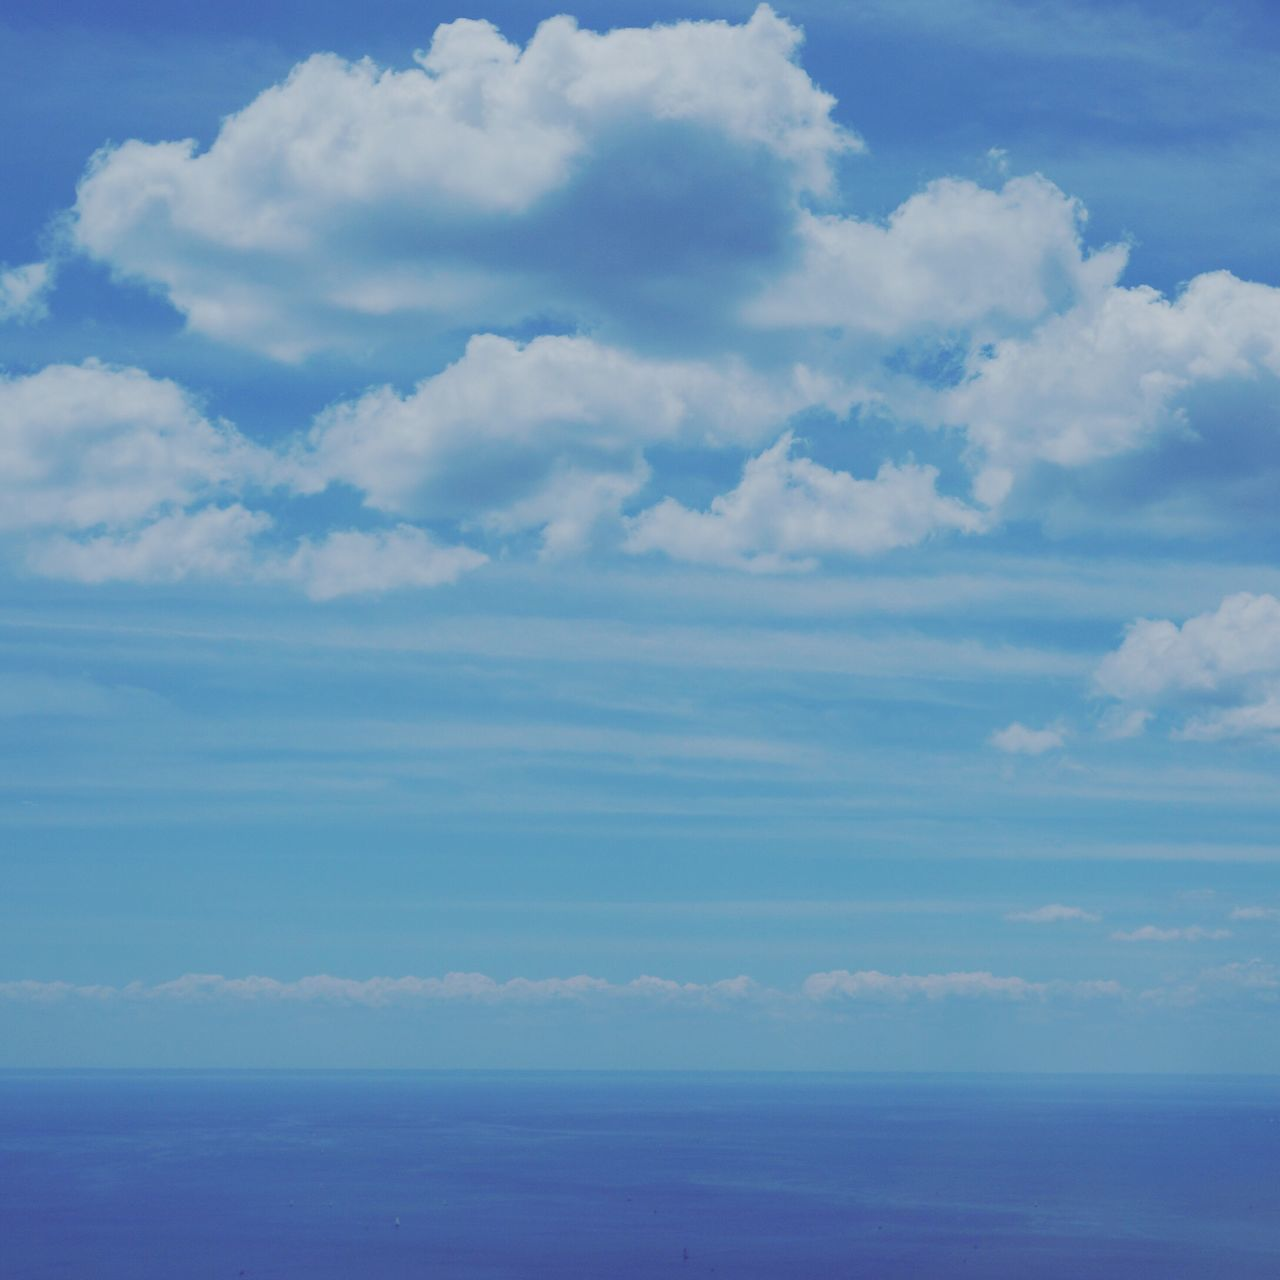 cloud - sky, tranquility, sky, scenics, beauty in nature, tranquil scene, nature, day, idyllic, no people, outdoors, blue, sea, horizon over water